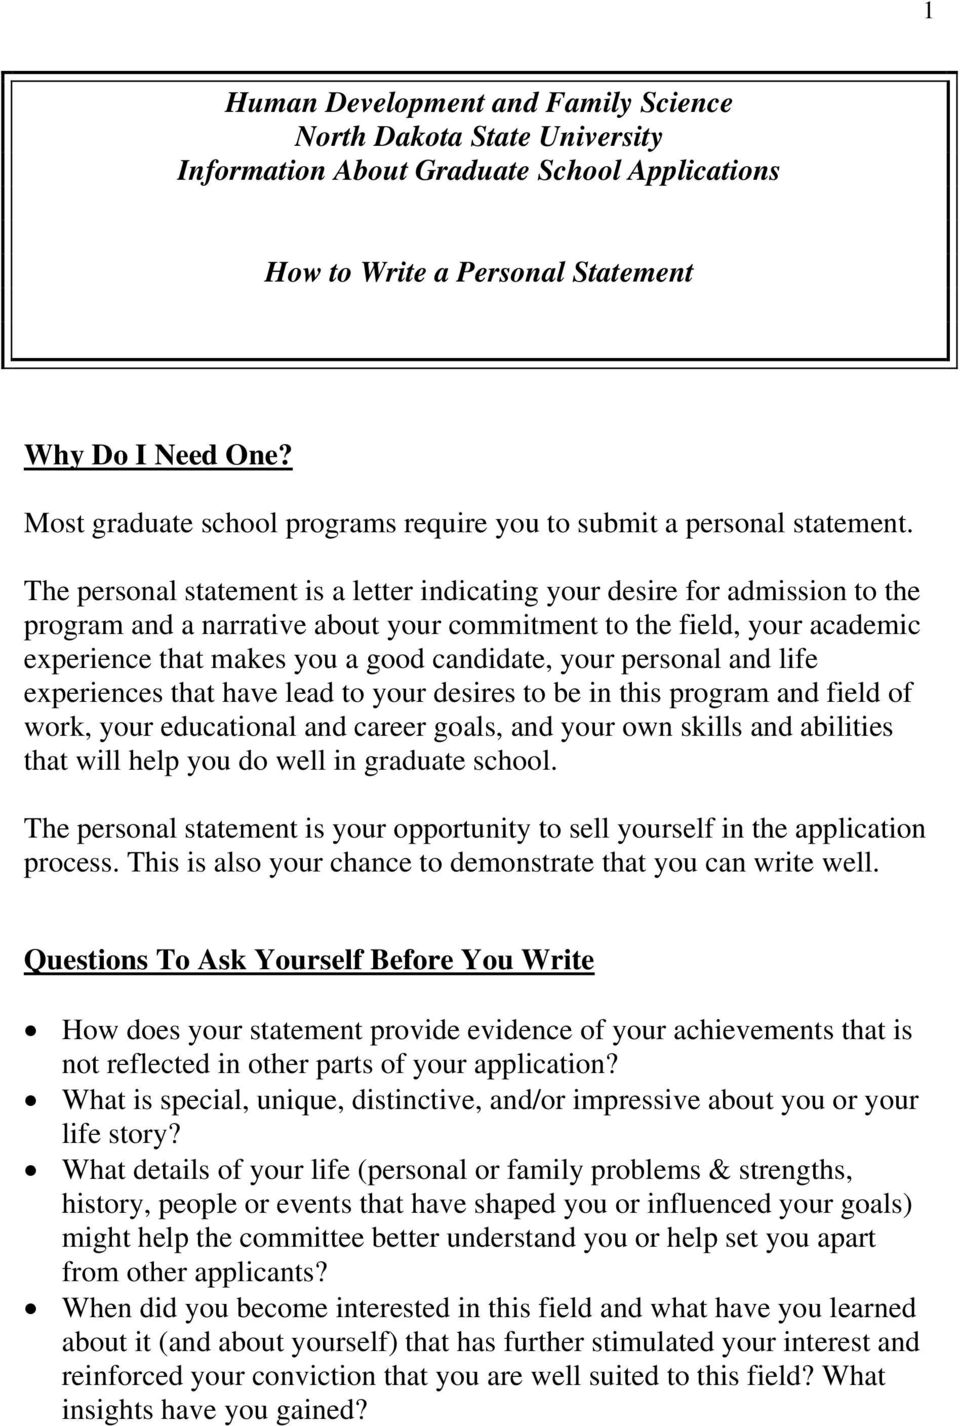 The personal statement is a letter indicating your desire for admission to the program and a narrative about your commitment to the field, your academic experience that makes you a good candidate,